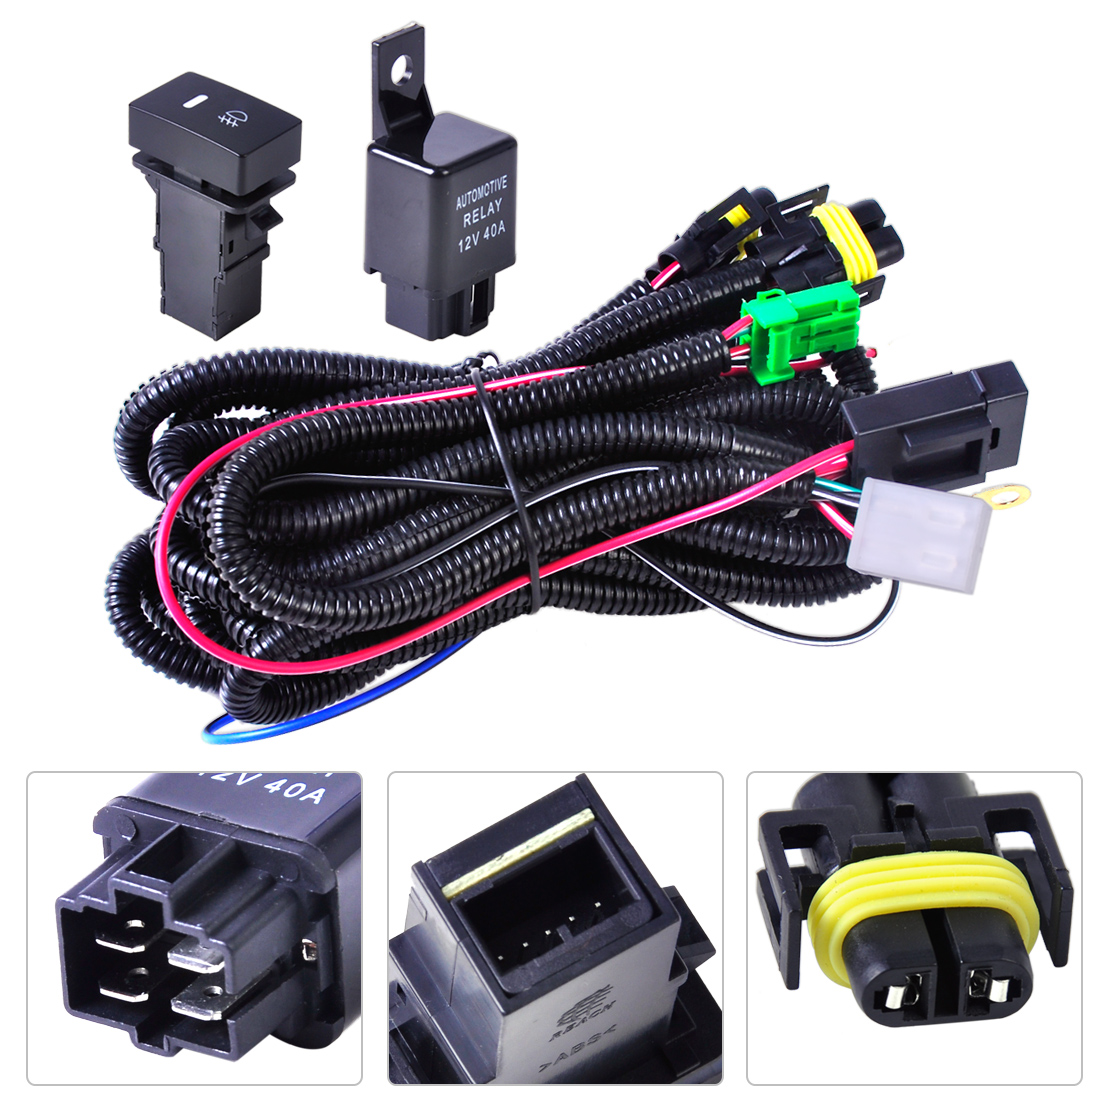 1 wiring harness sockets switch for h11 fog light lamp ford focus 2001 mustang fog light wiring harness at mifinder.co